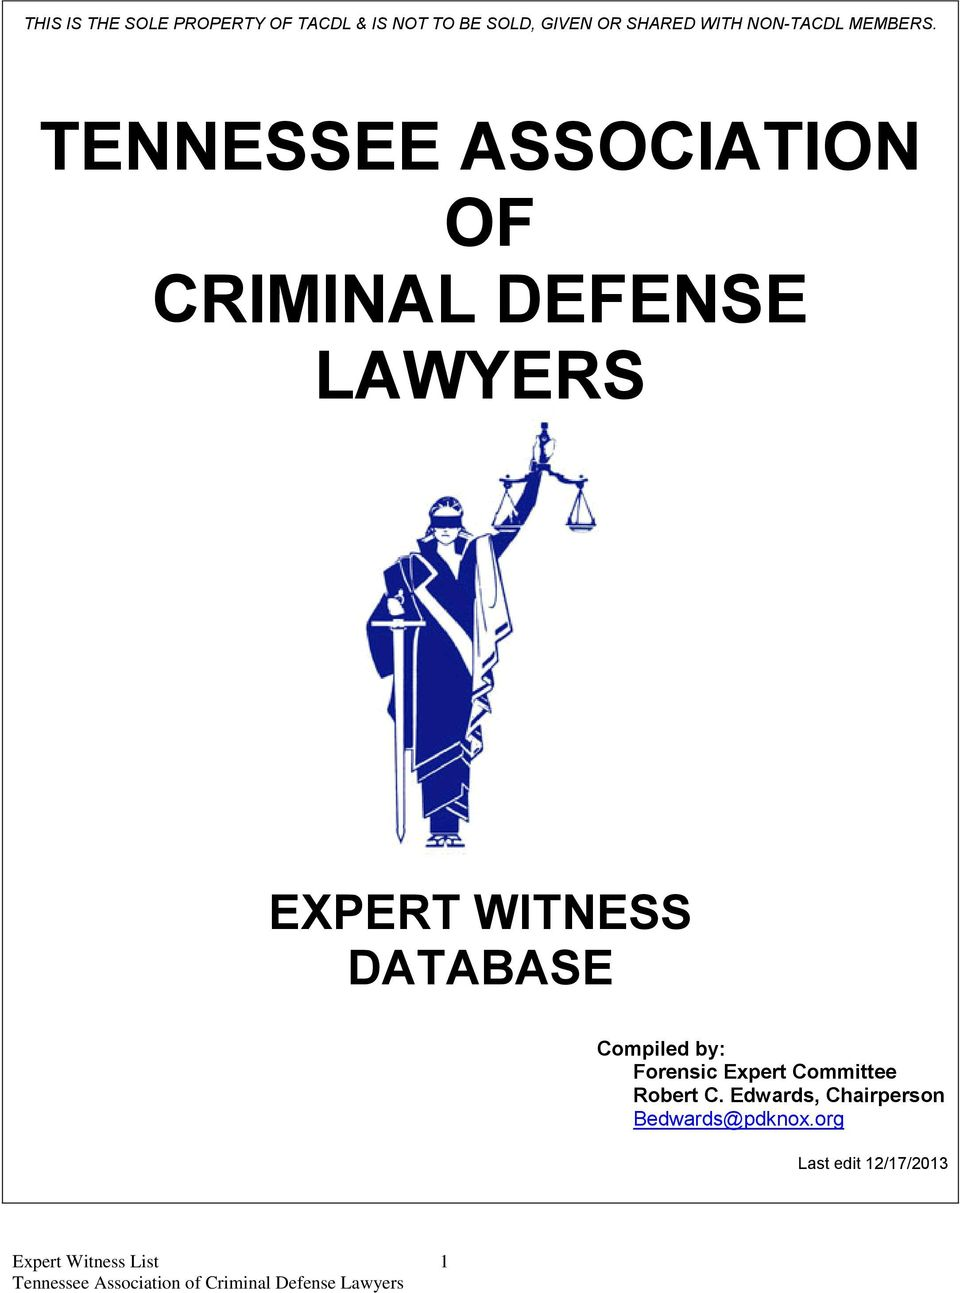 TENNESSEE ASSOCIATION OF CRIMINAL DEFENSE LAWYERS EXPERT WITNESS